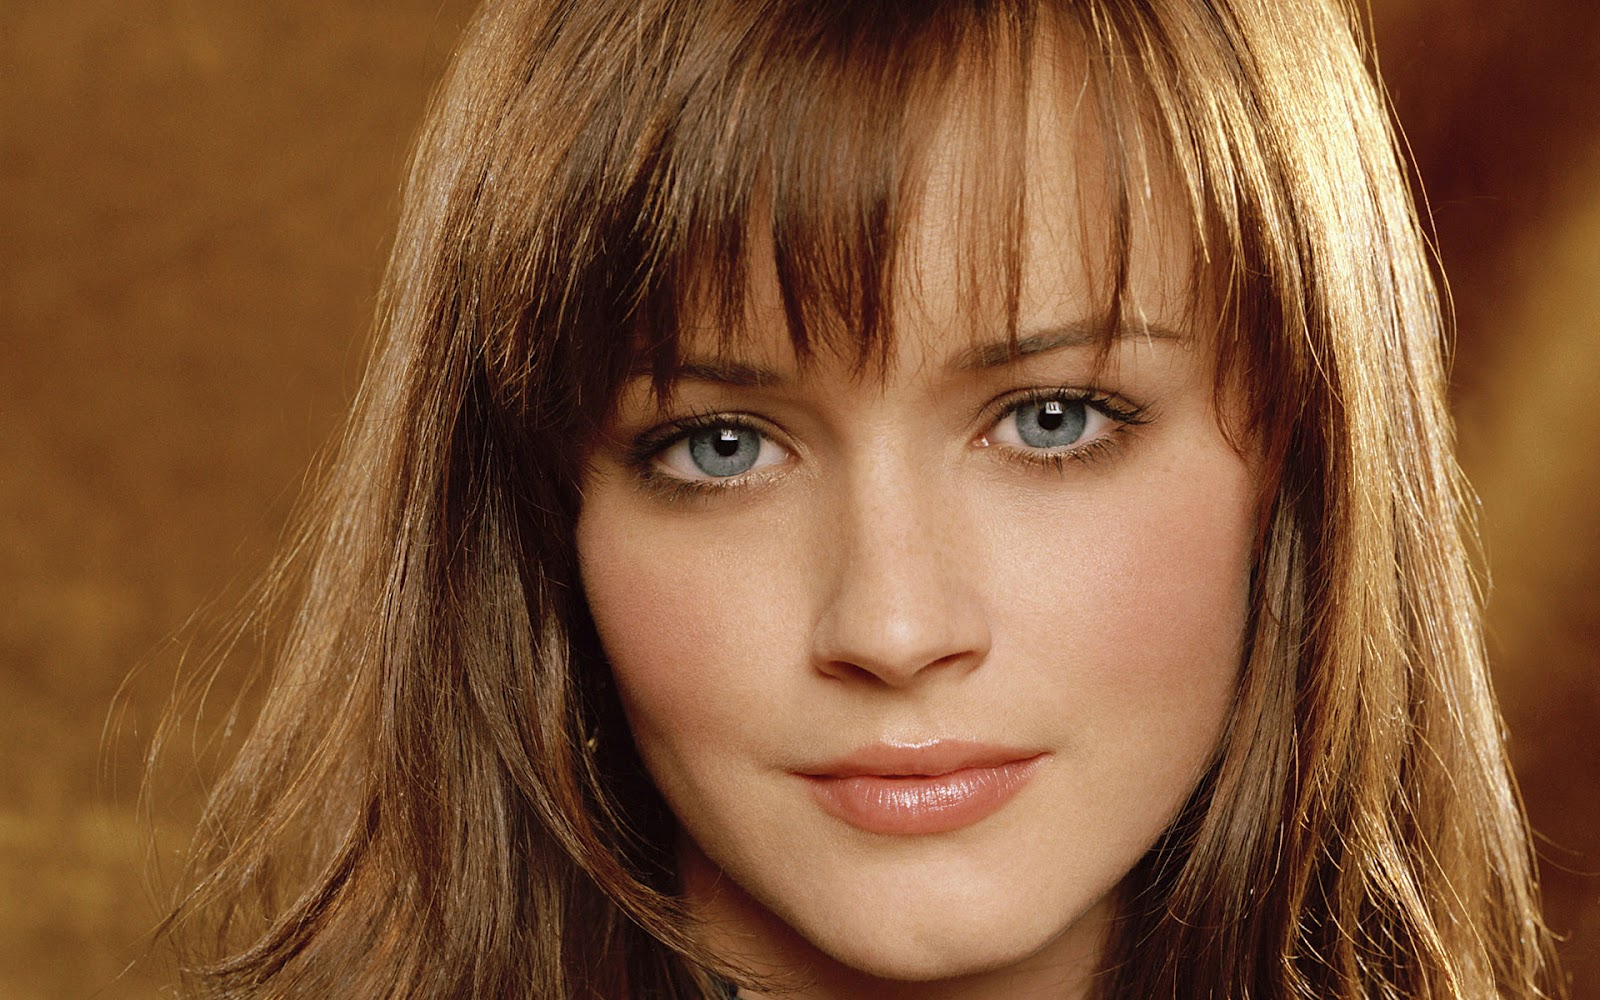 Quotes Wallpaper About Love Alexis Bledel Hd Wallpapers Celebrity Insights